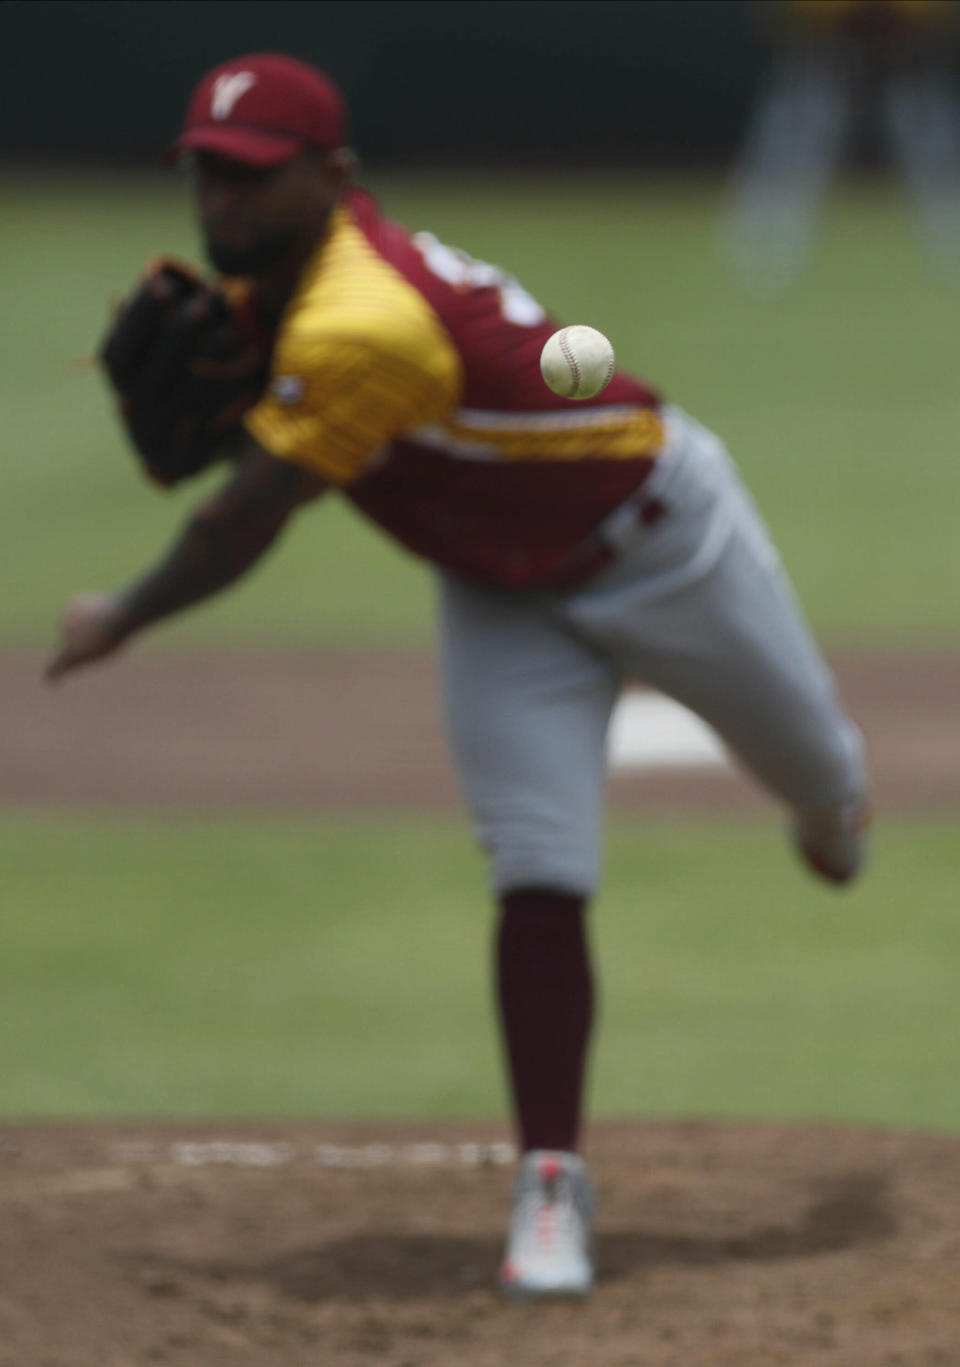 Venezuela pitcher Yapson Gomez delivers a pitch during a final Olympic baseball qualifier game against the Dominican Republic, in Puebla, Mexico, Saturday, June 26, 2021. (AP Photo/Fernando Llano)